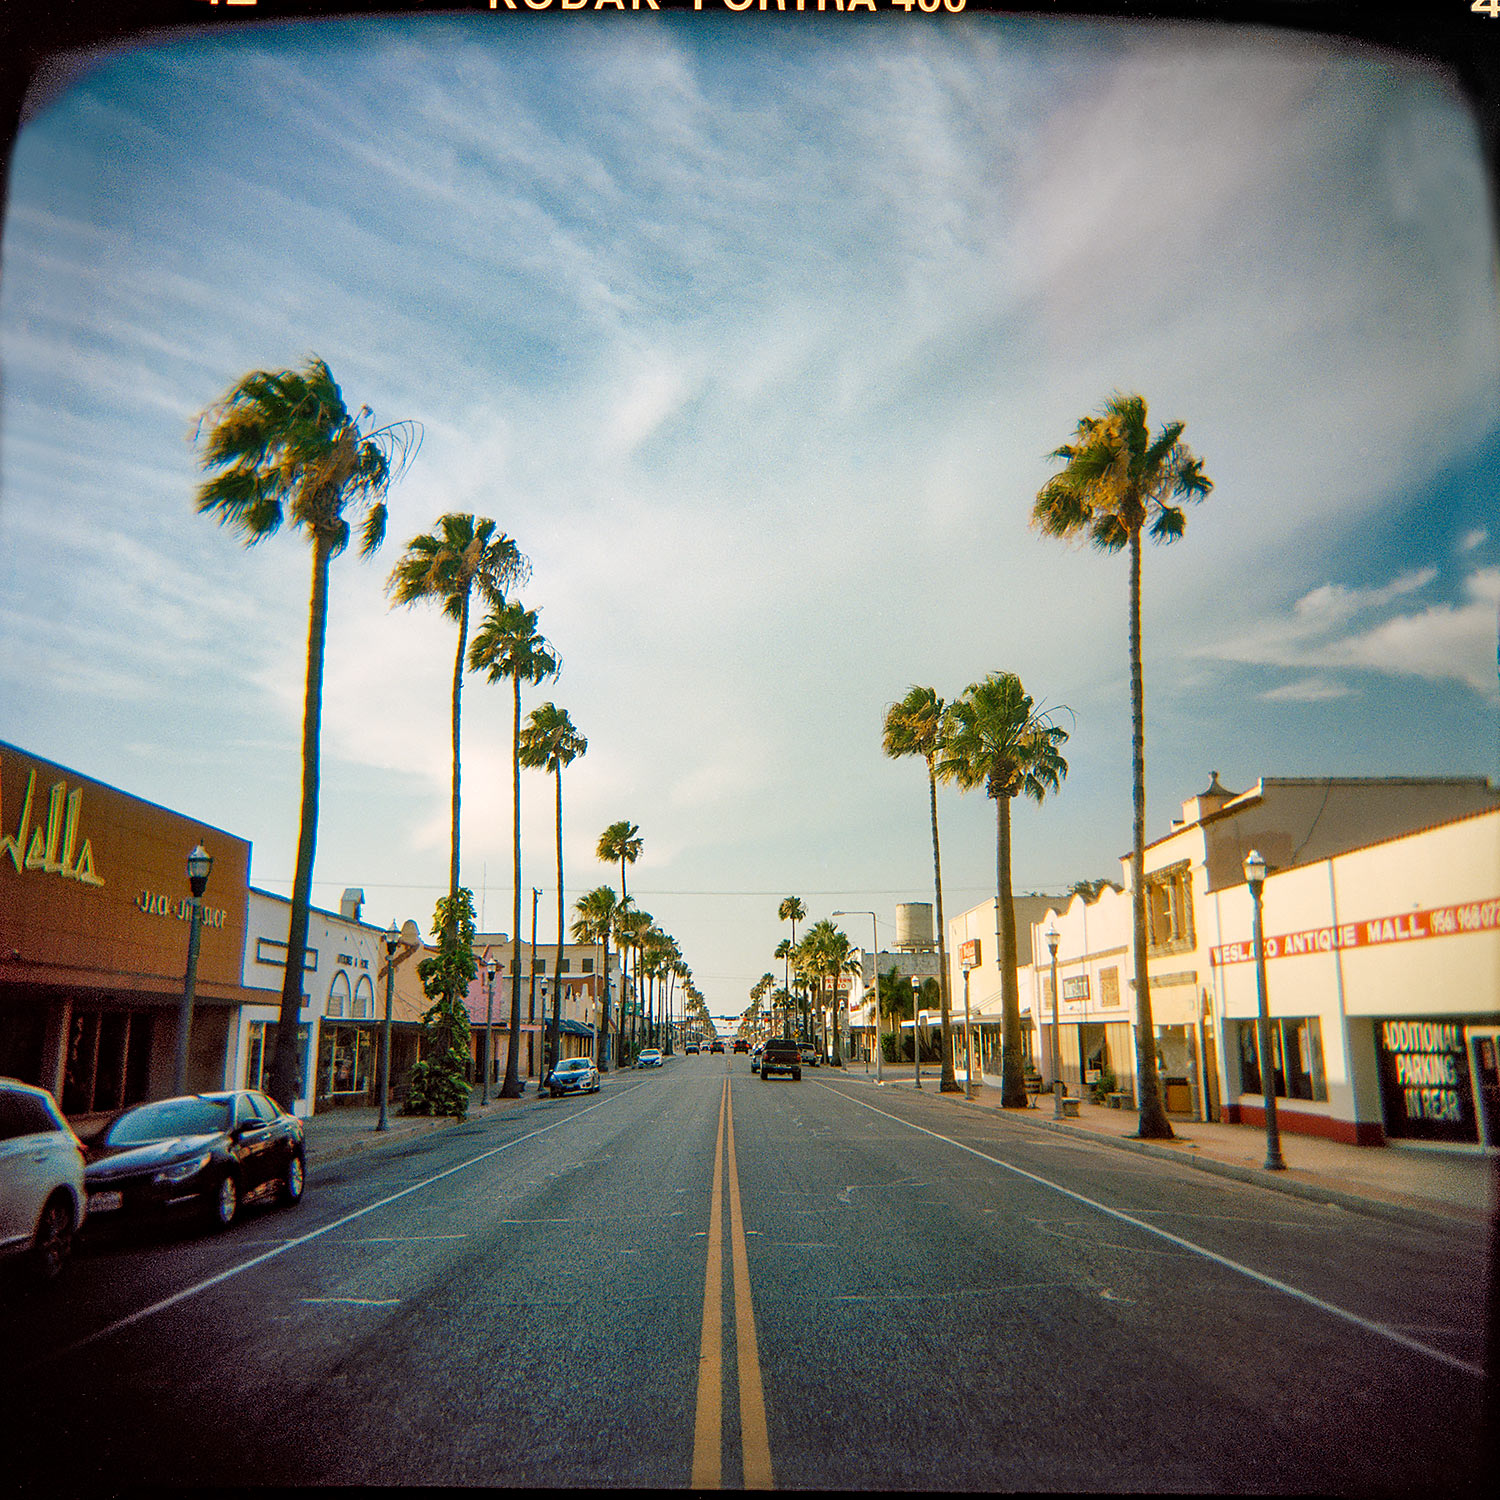 Palm lined Main Street - Weslaco, Tx. - Rio Grande Valley